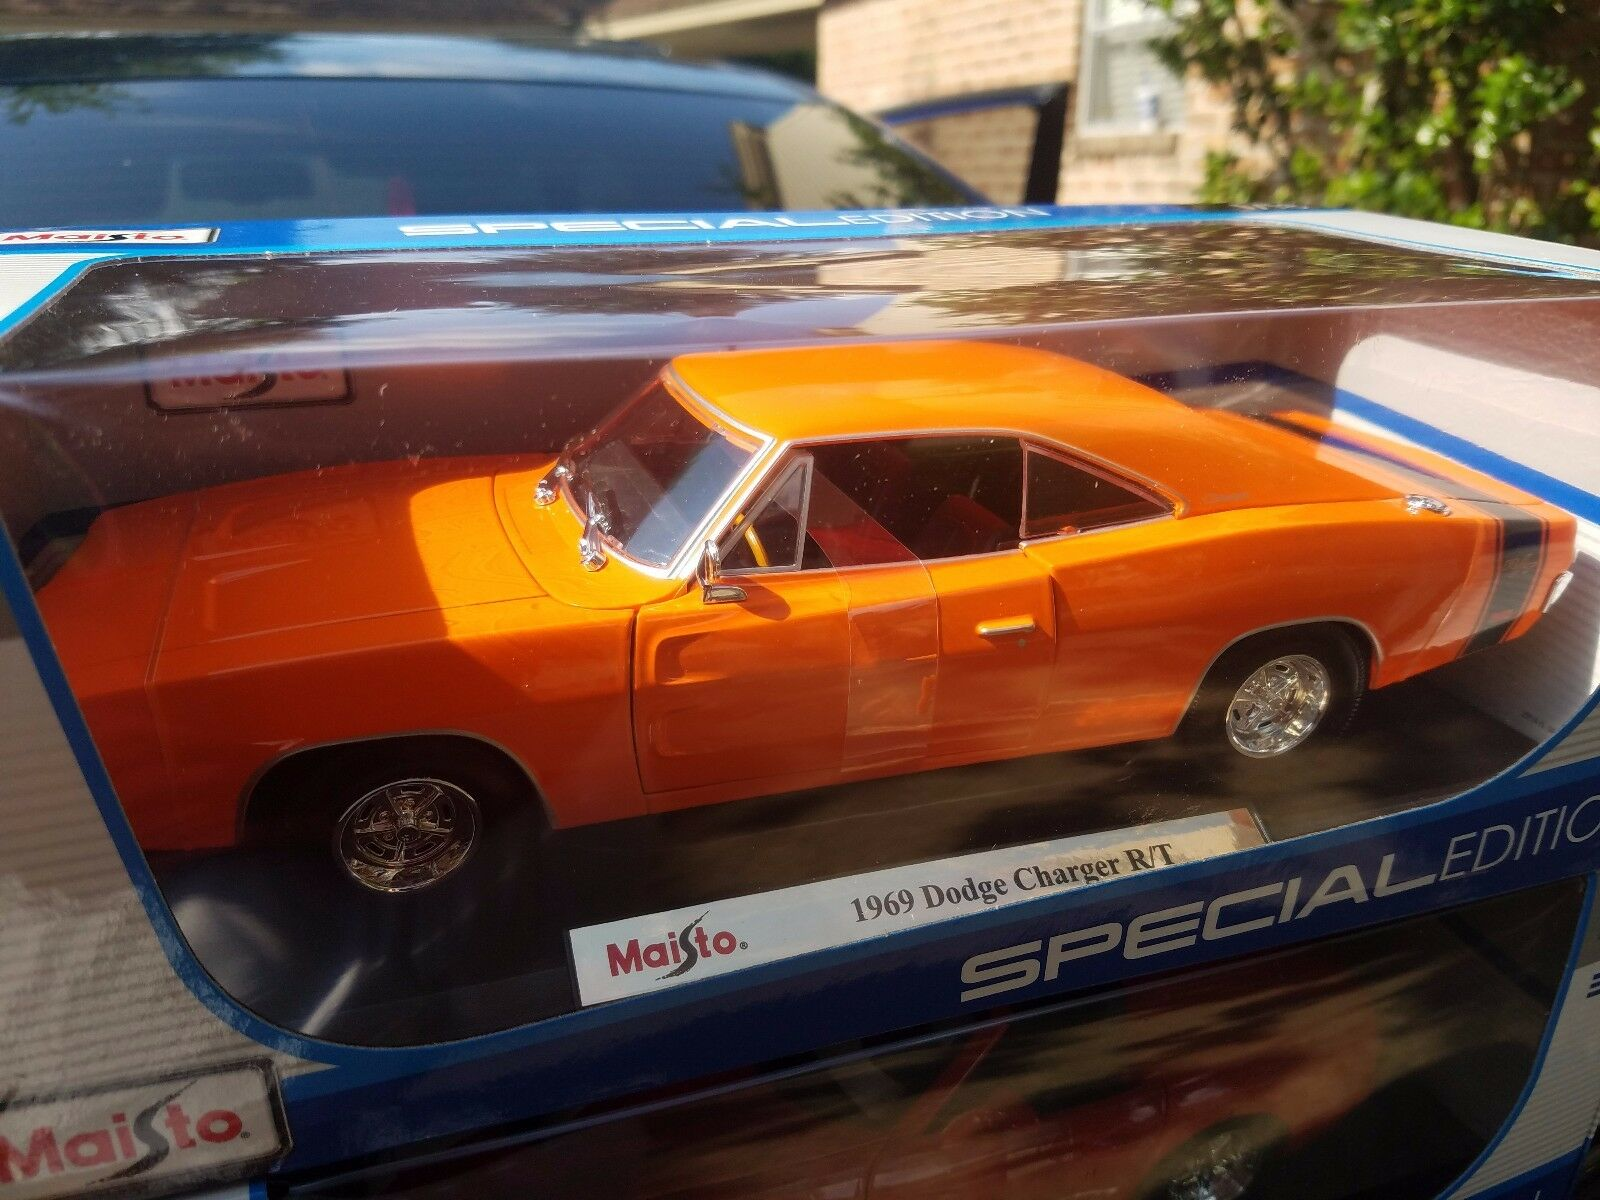 Exclusive maisto 1 18 scale diecast model 1969 dodge charger r t cad 28 38 picclick ca